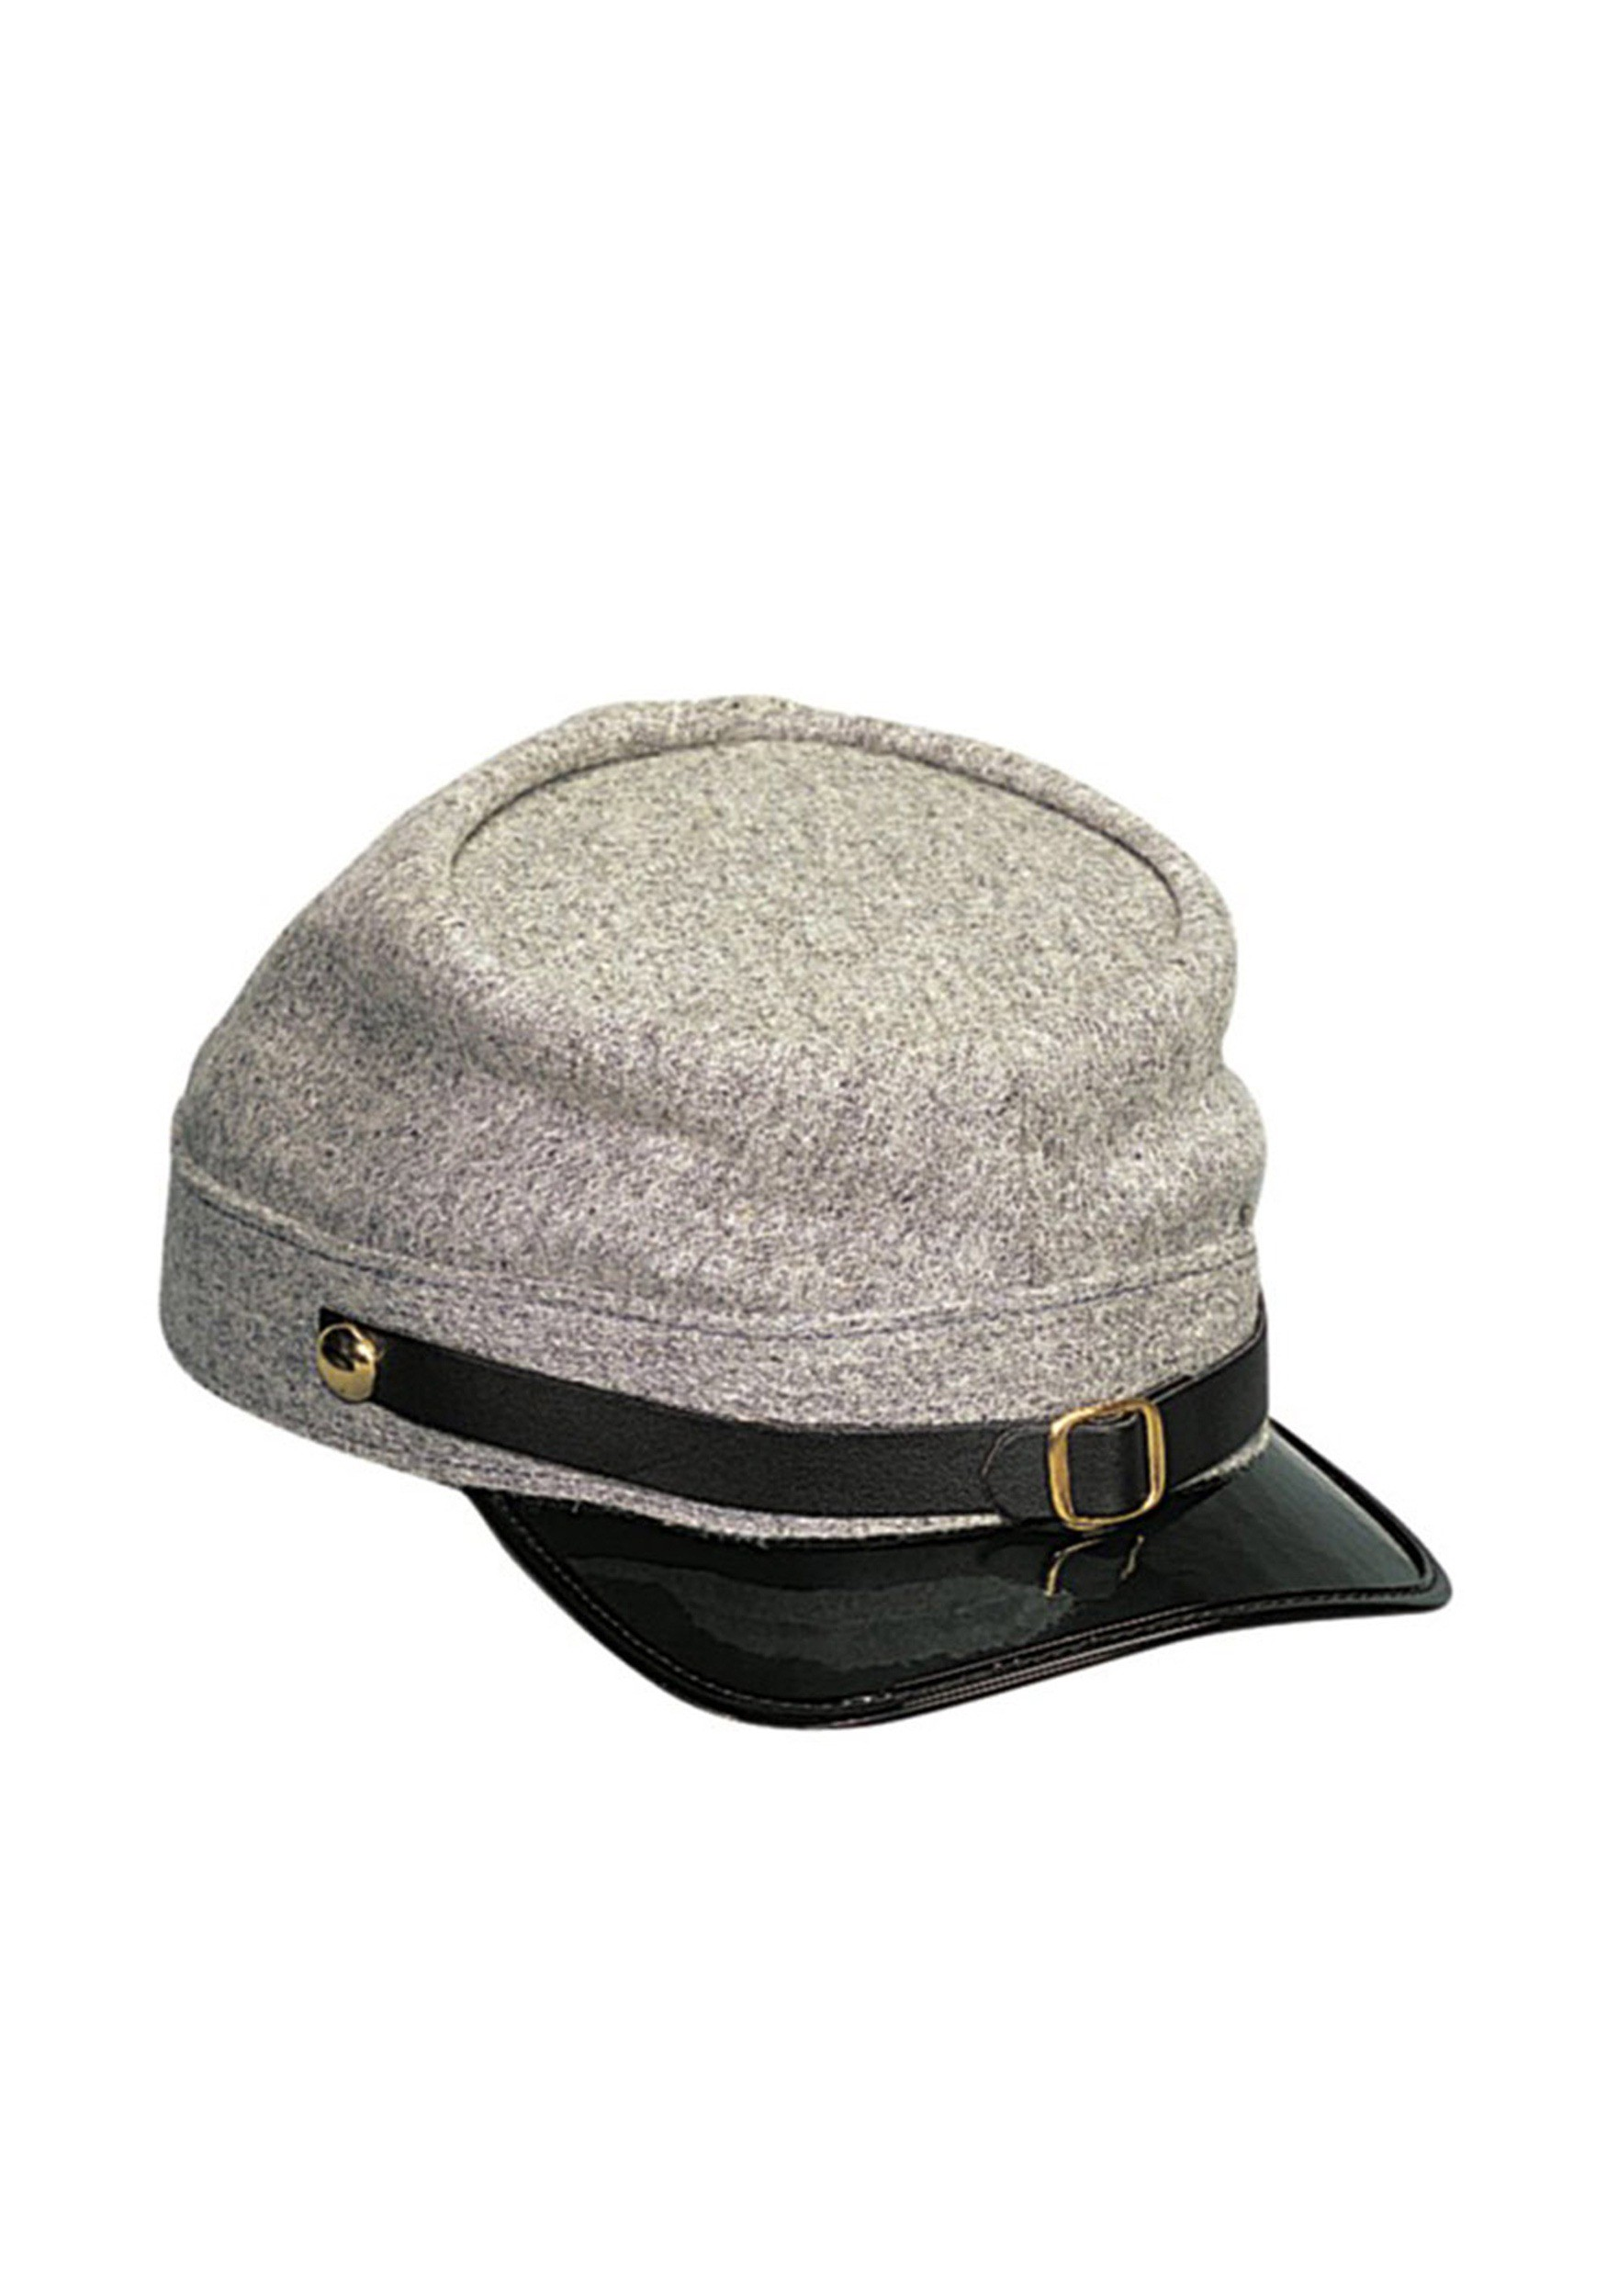 Adult Deluxe Kepi Hat